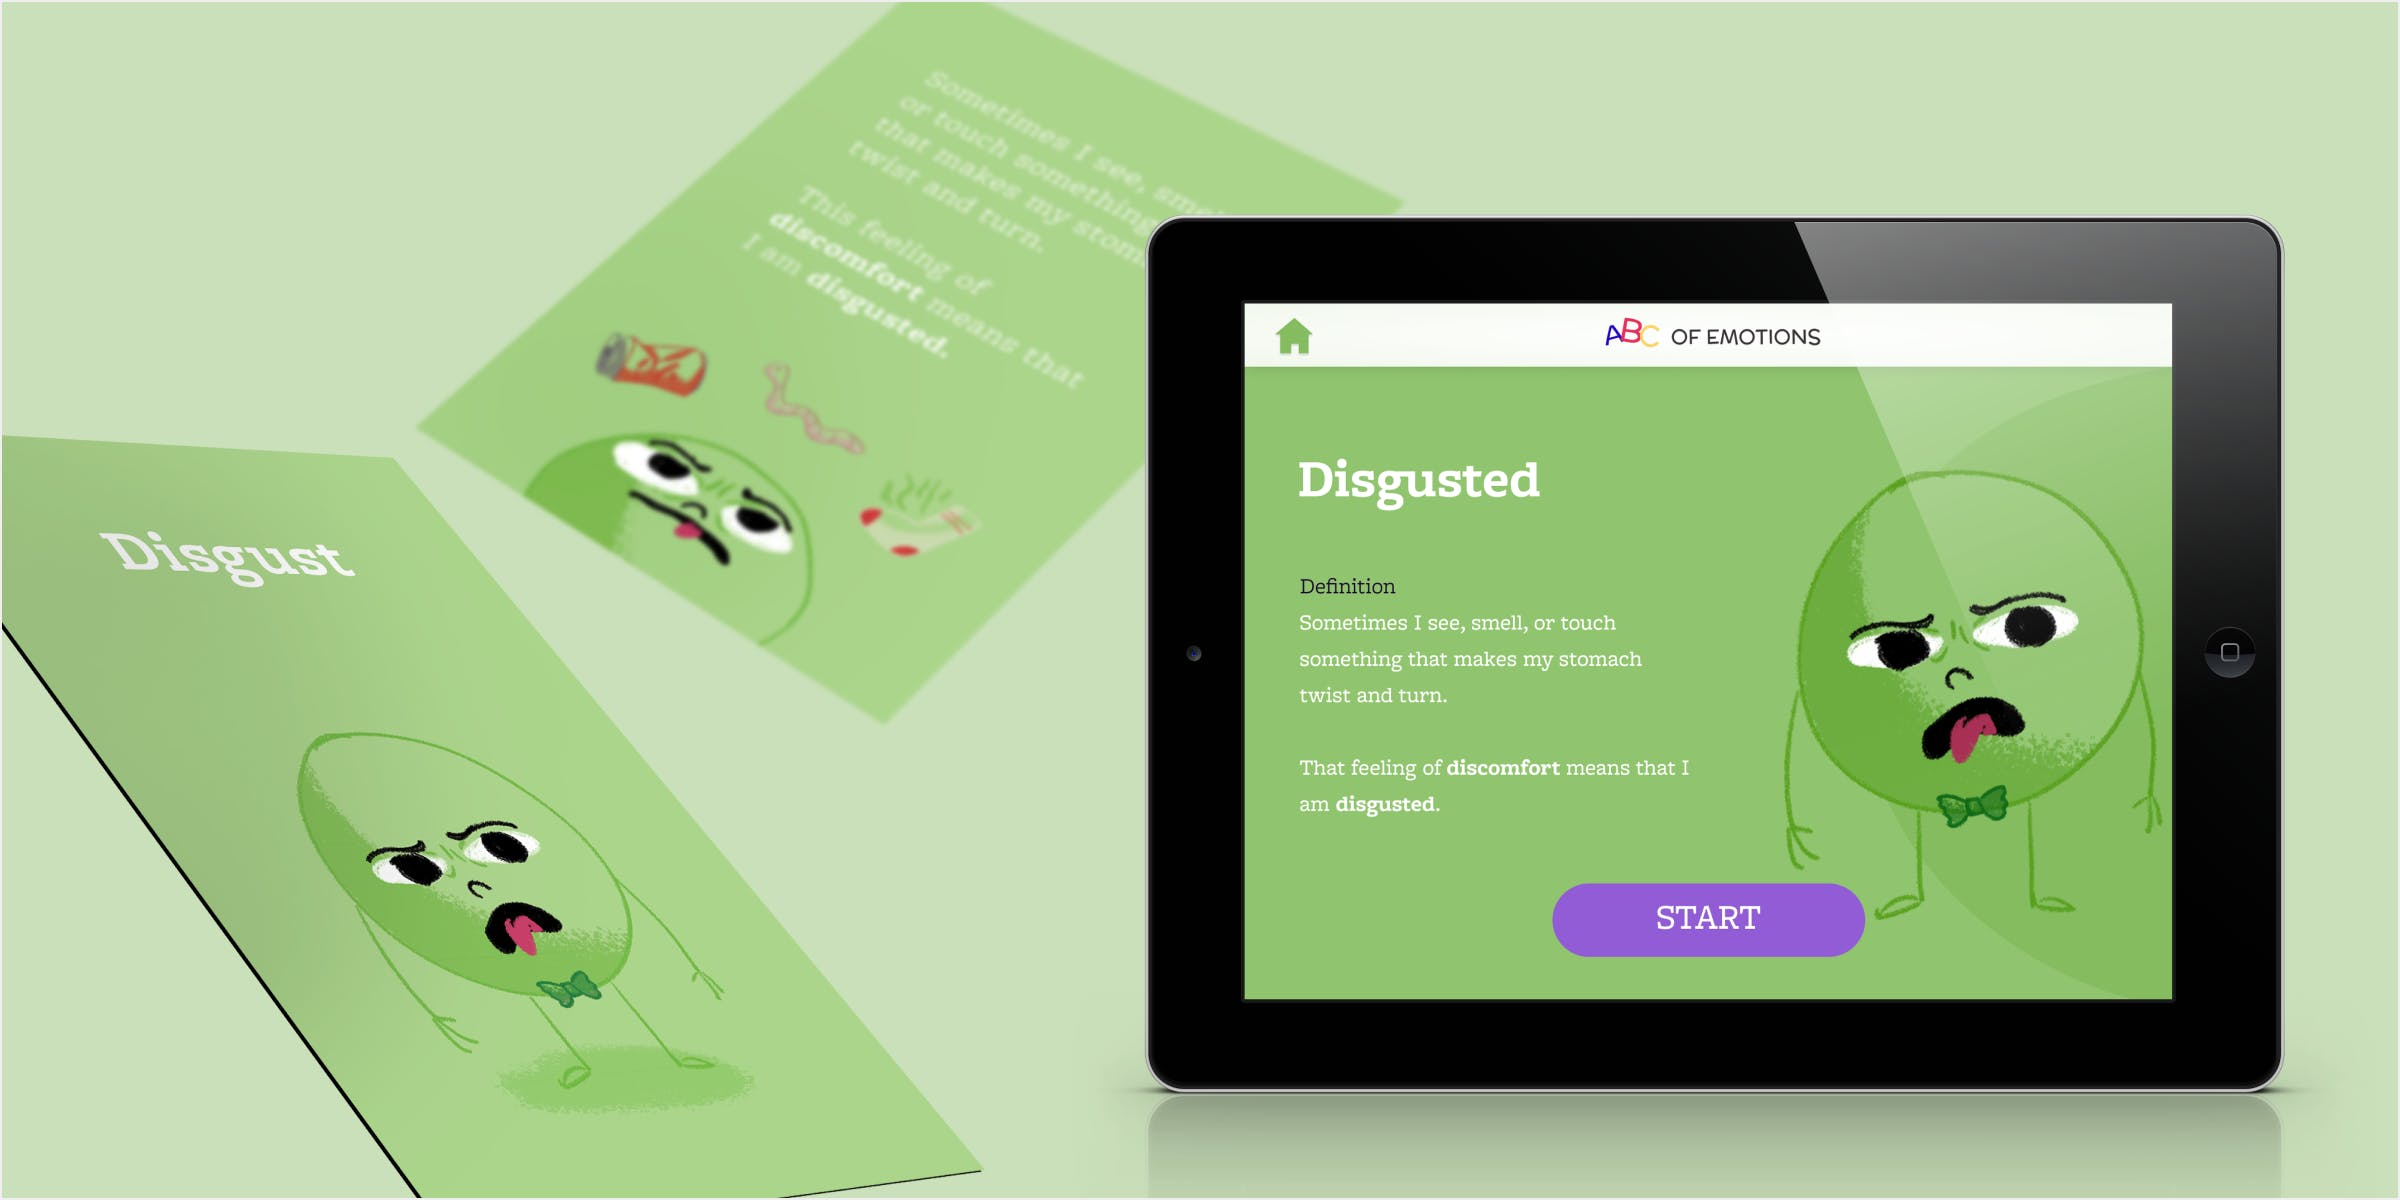 Mockup of the front and back of the card designed for Disgust and an iPad with the first page of the interaction displayed